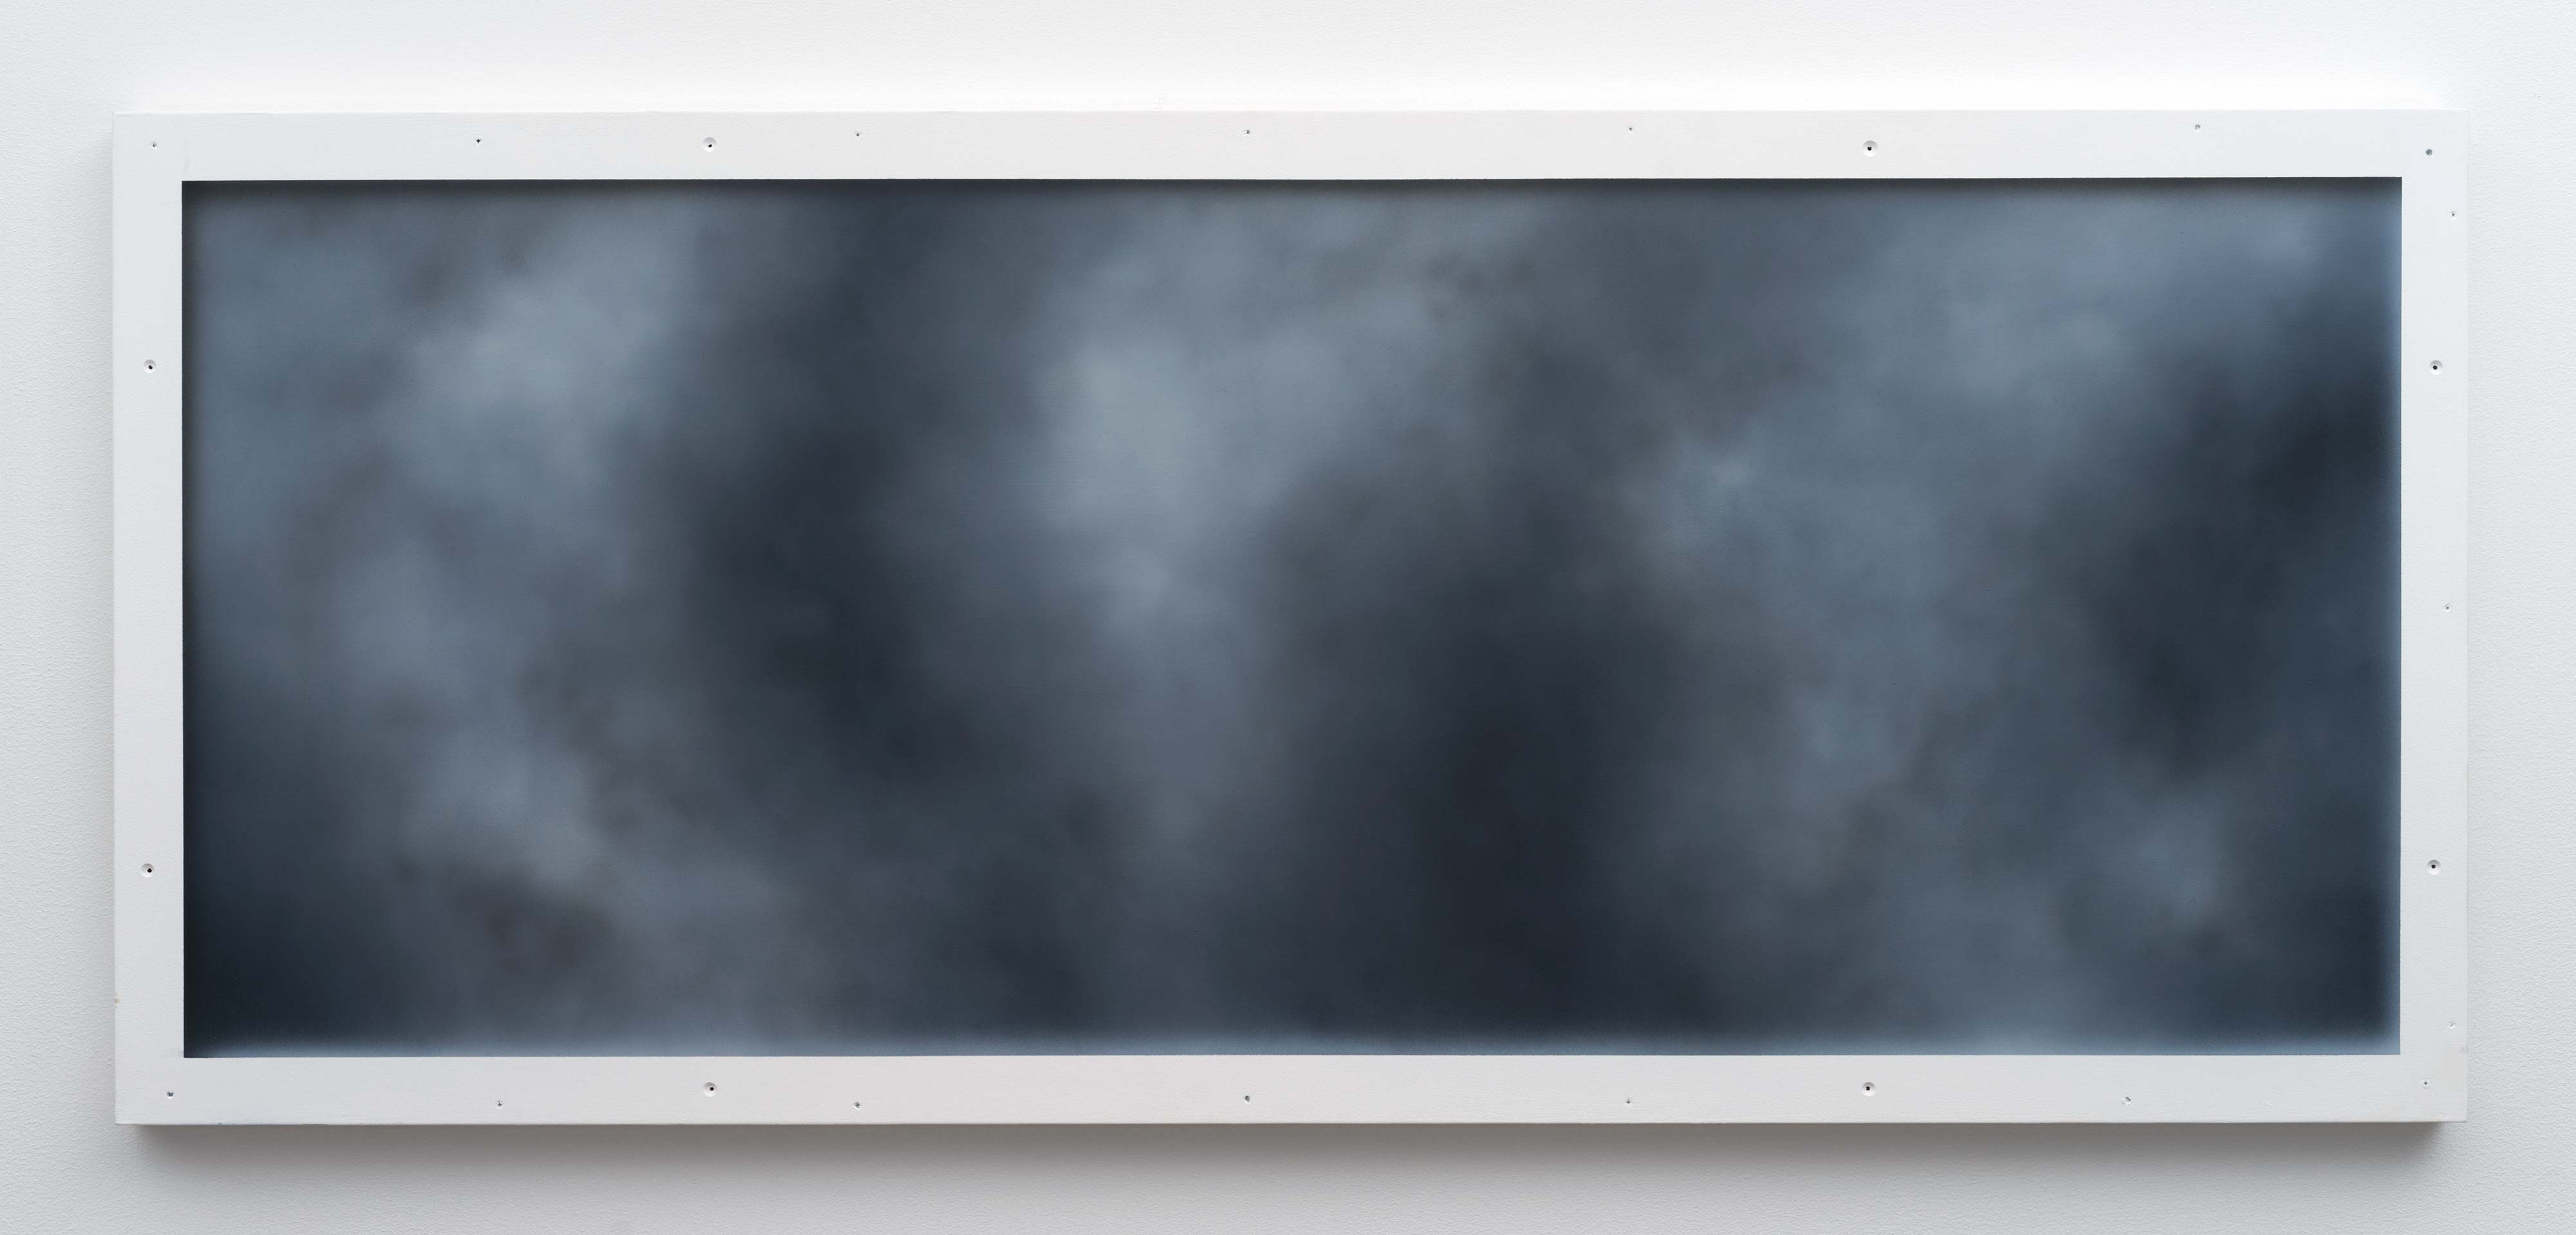 Christopher Page<br>Nocturne (VII)<br>2016<br>oil and acrylic on panel<br>23.6 x 54.3 in (60 x 138 cm)